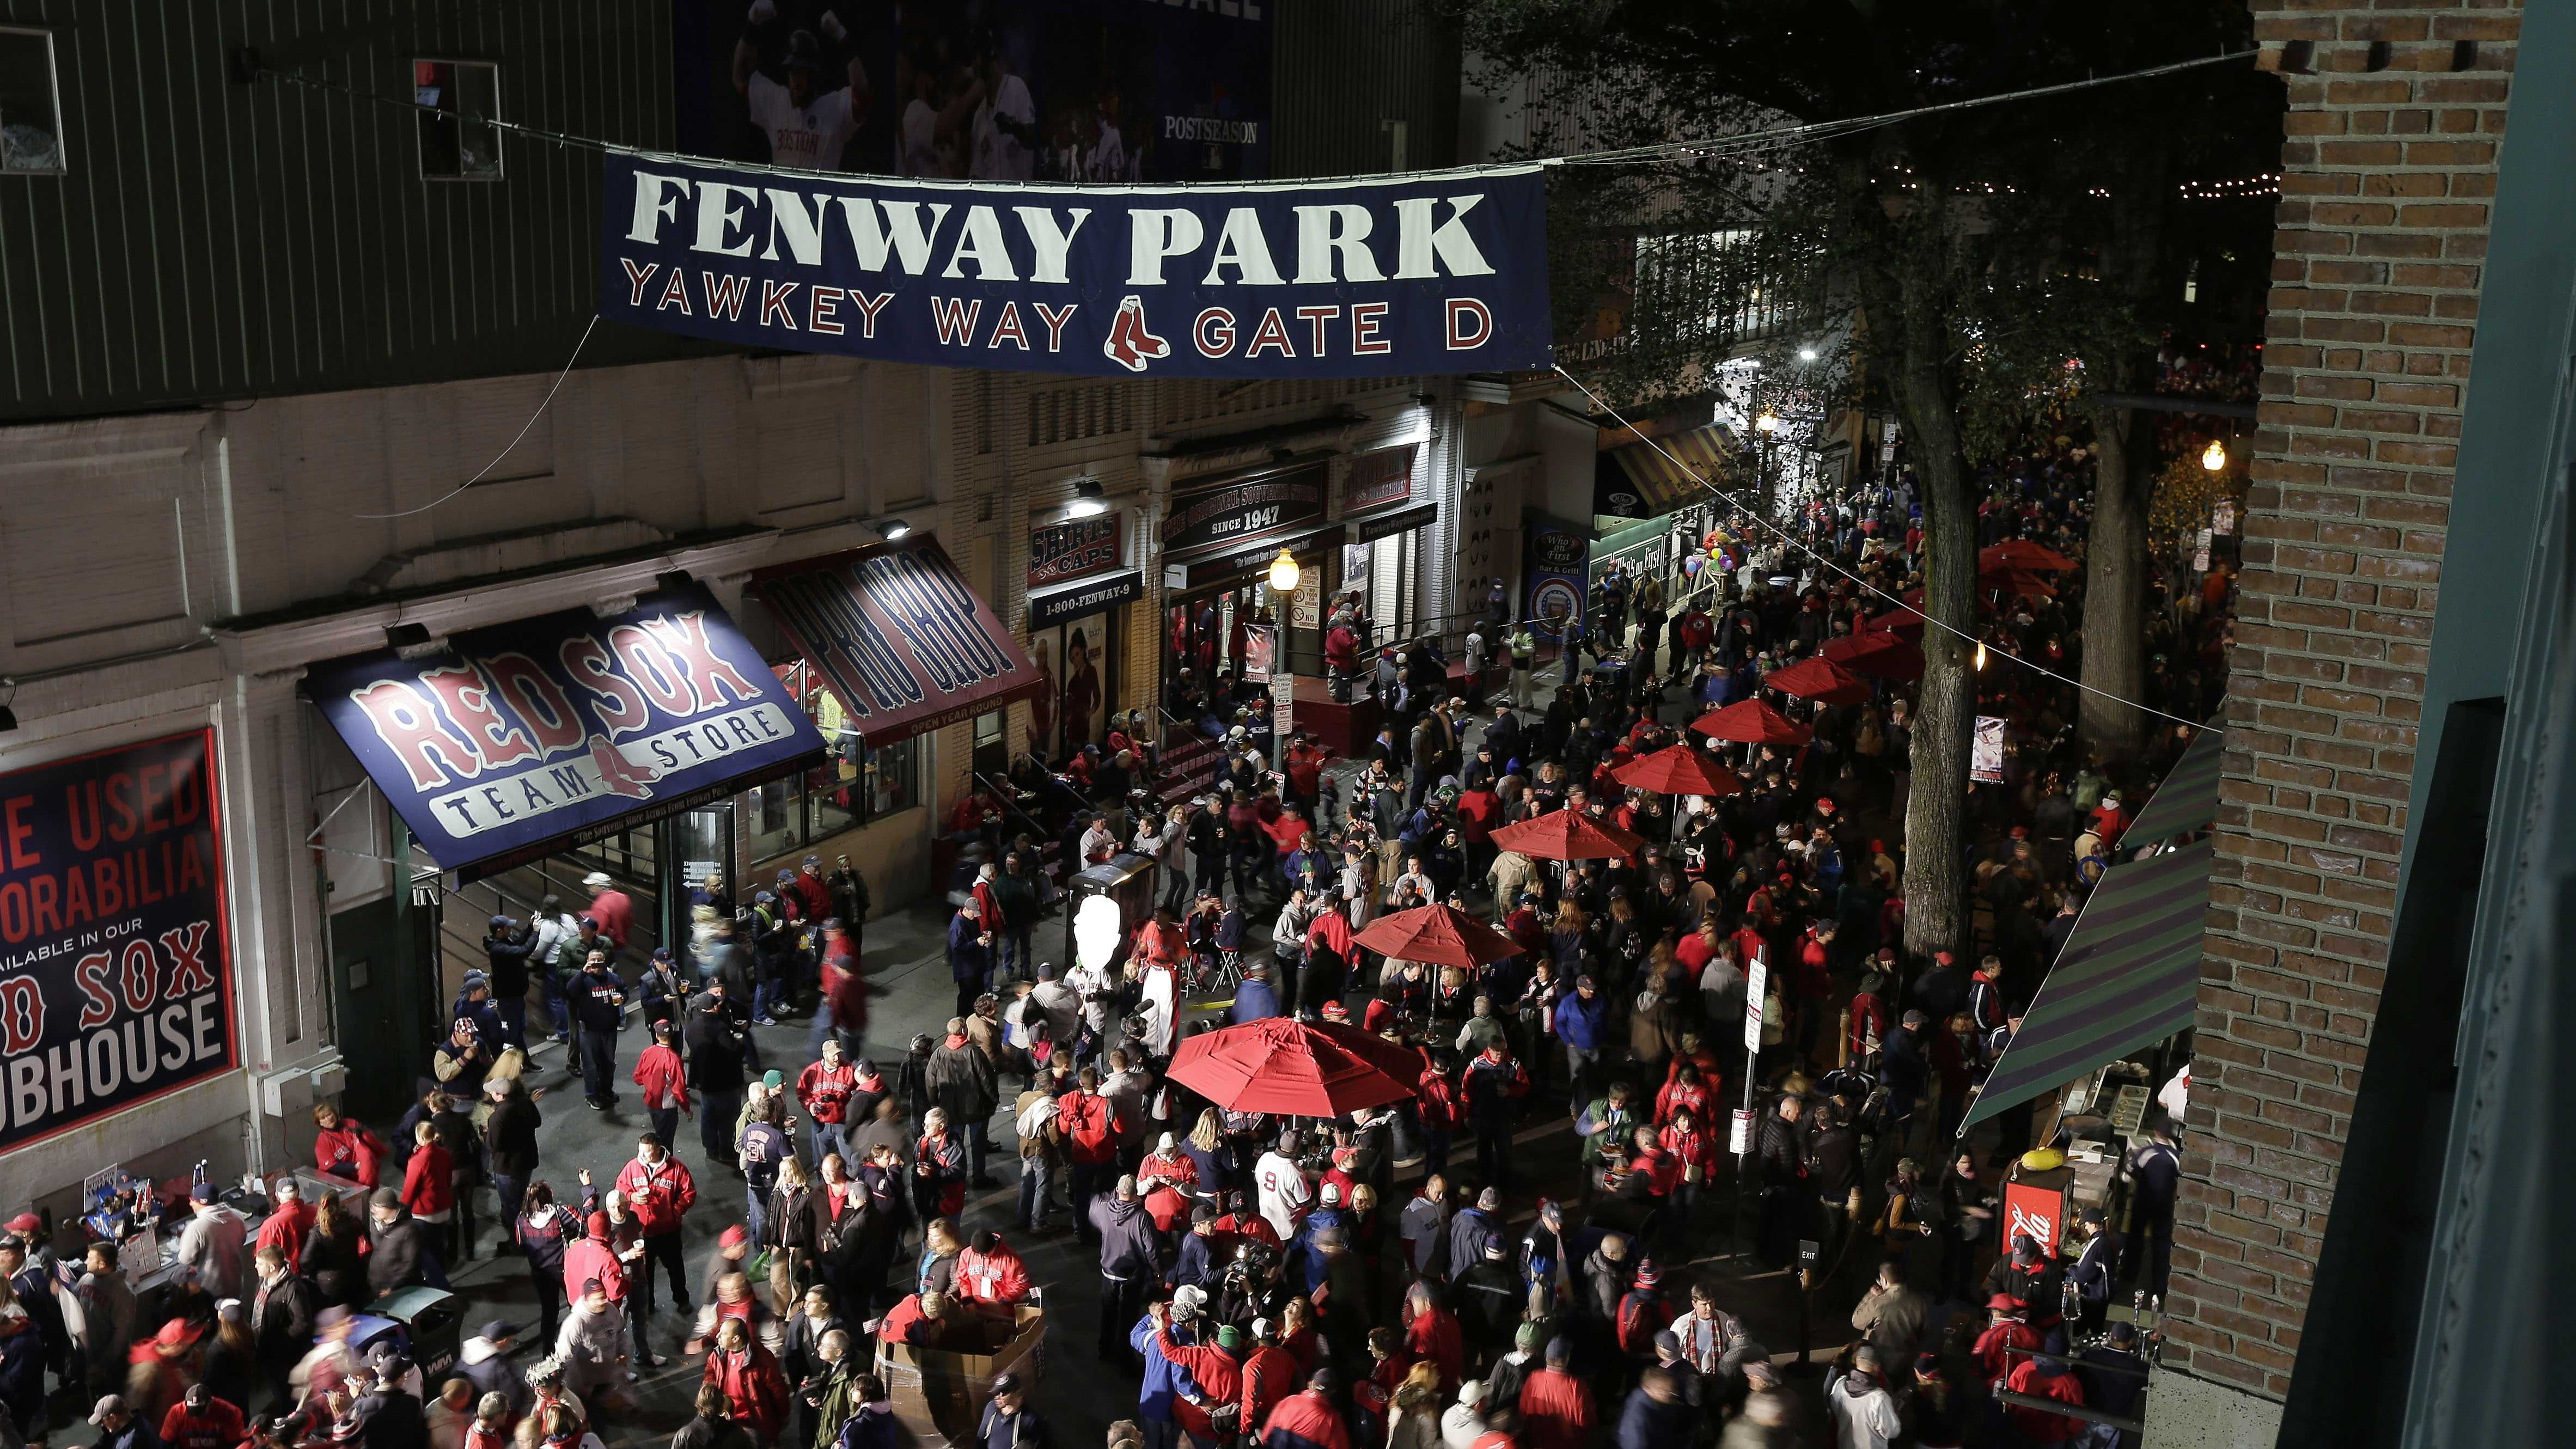 Fans make their way to Fenway Park before Game 1 of baseball's World Series between the Boston Red Sox and the St. Louis Cardinals Wednesday, Oct. 23, 2013, in Boston.